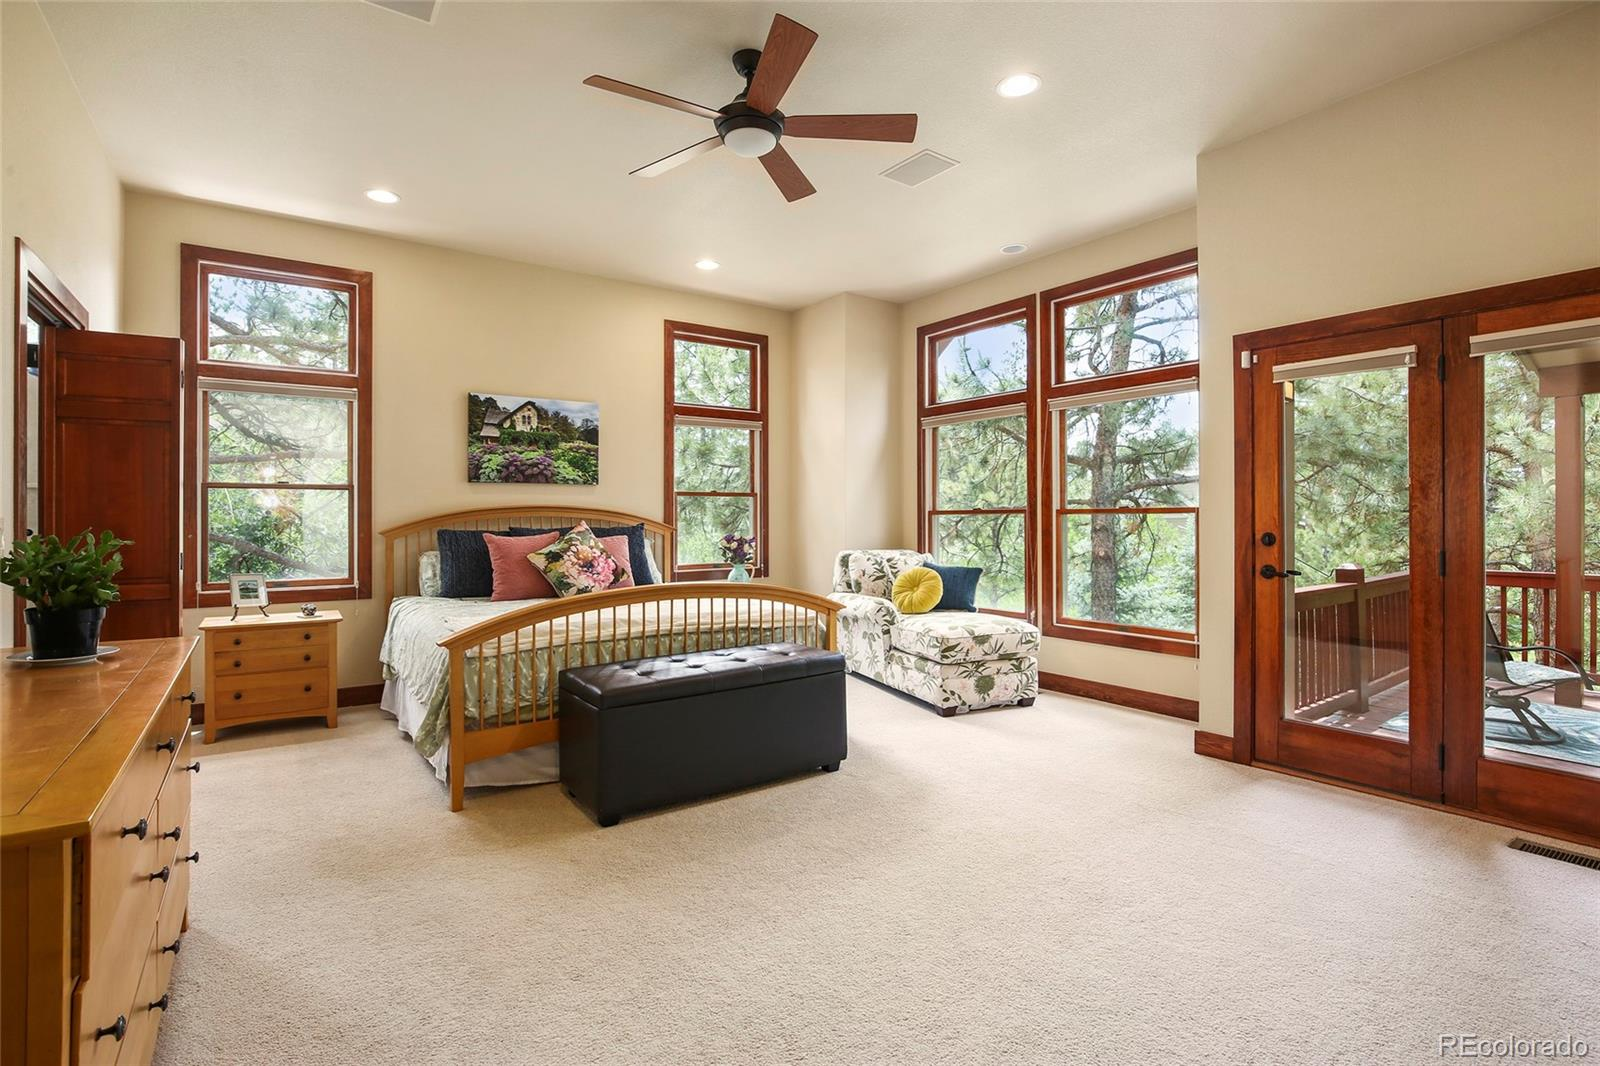 MLS# 8150320 - 18 - 1198 Forest Trails Drive, Castle Pines, CO 80108